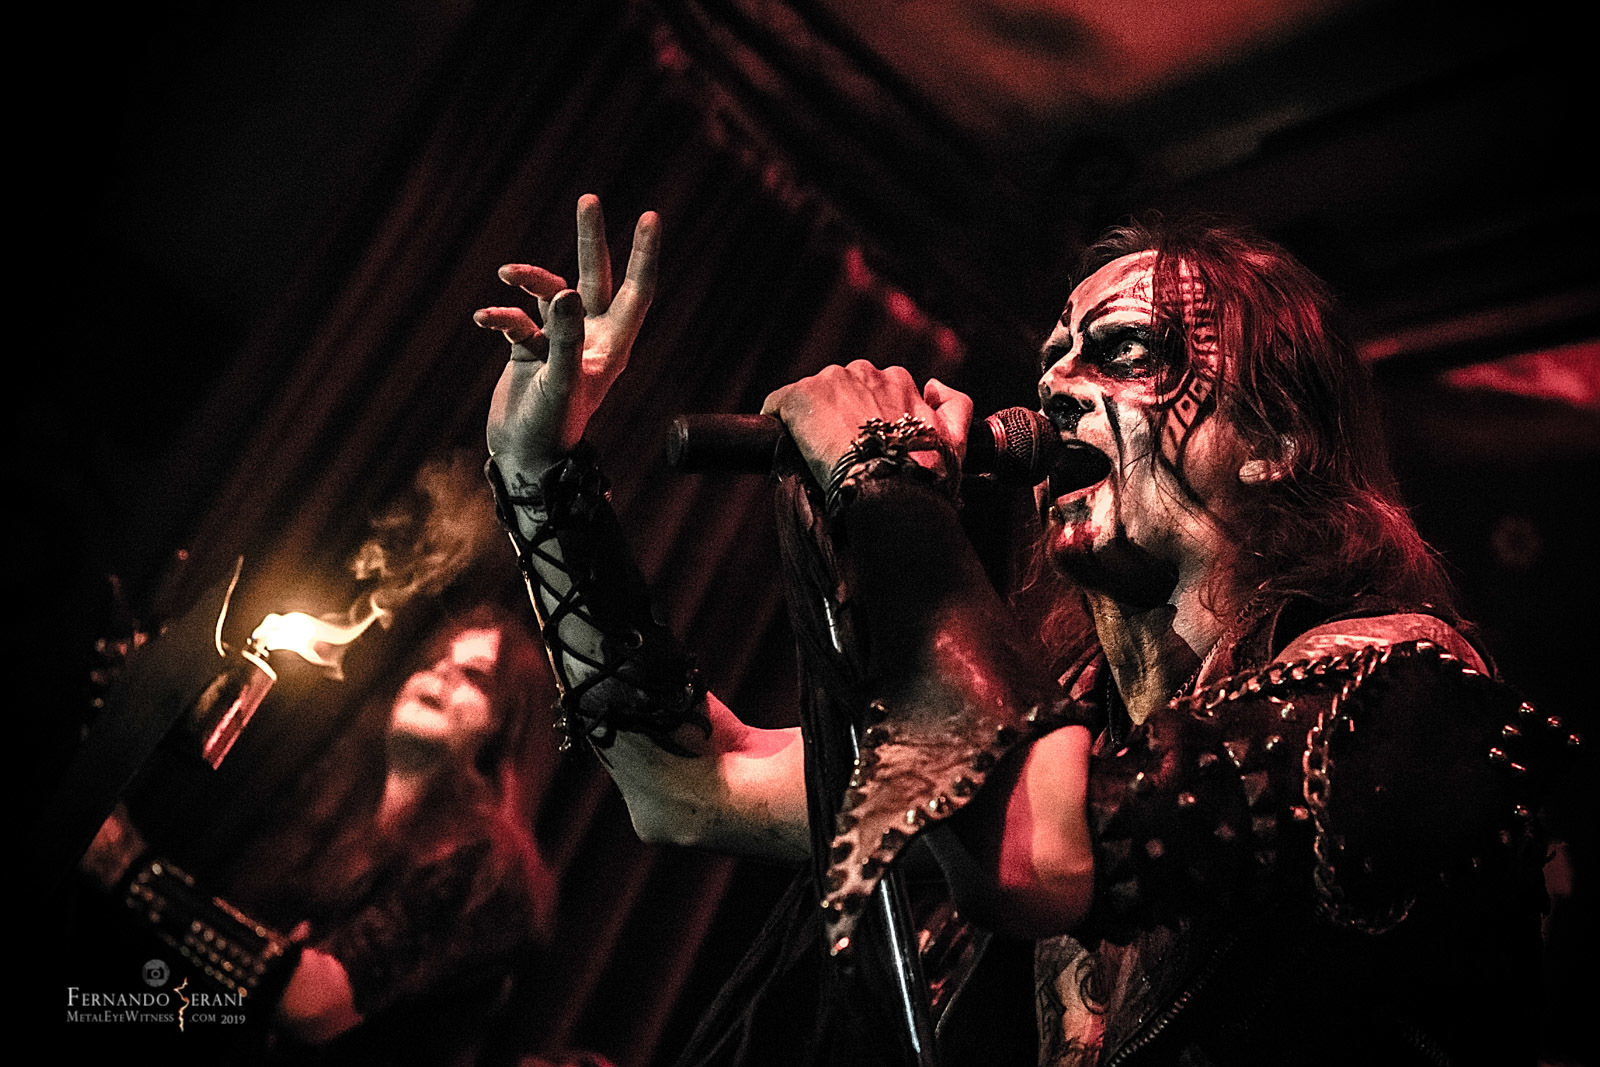 THE ARSONIST - A CONVERSATION WITH ERIK DANIELSSON FROM WATAIN, PART 1